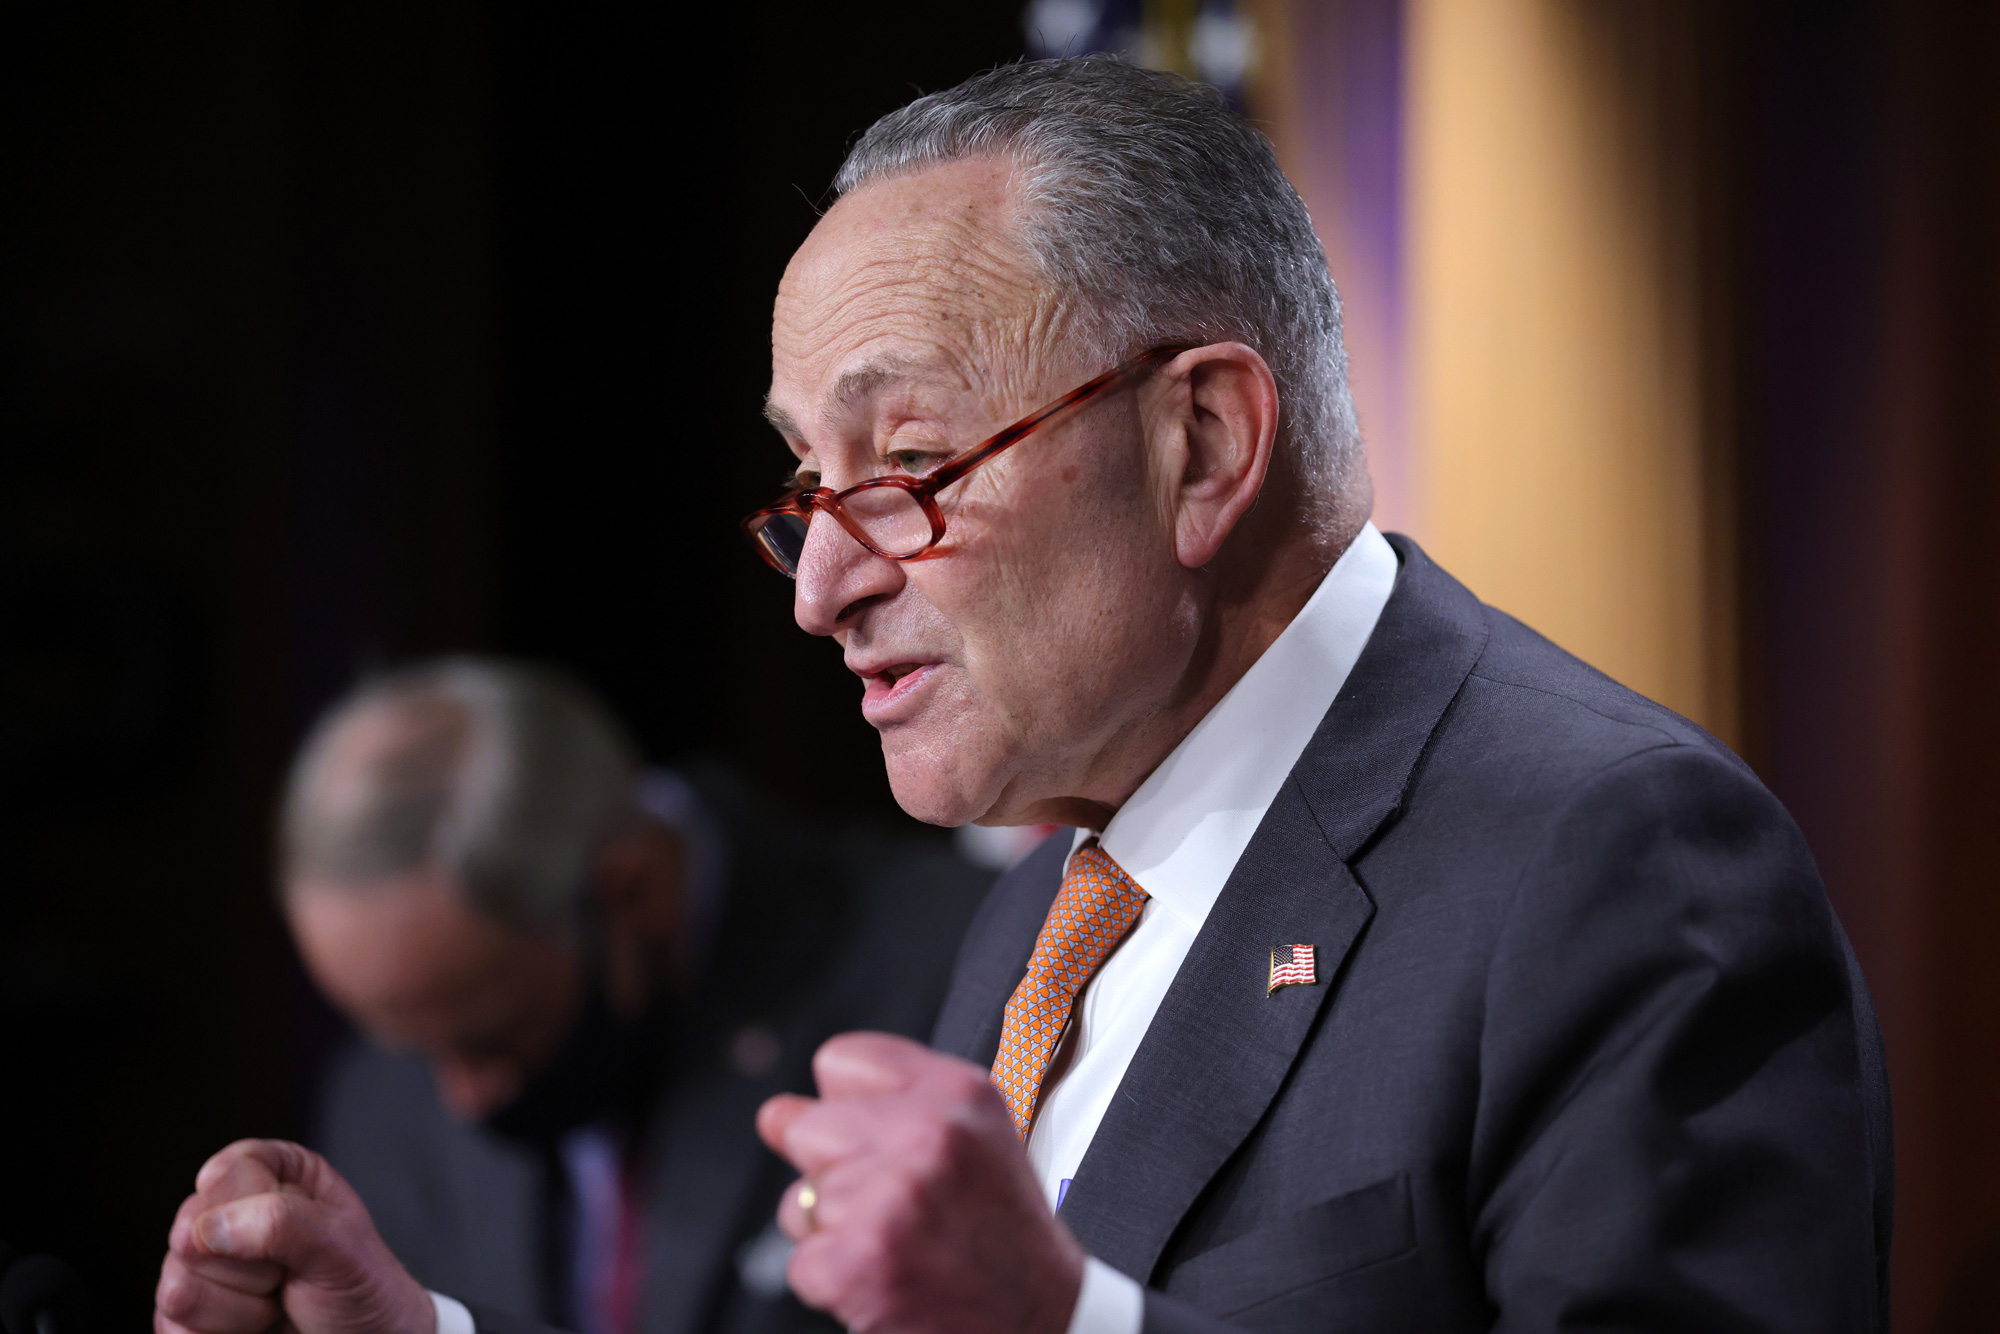 Senate Minority Leader Chuck Schumer speaks during a press conference at the U.S. Capitol on December 8 in Washington, DC.